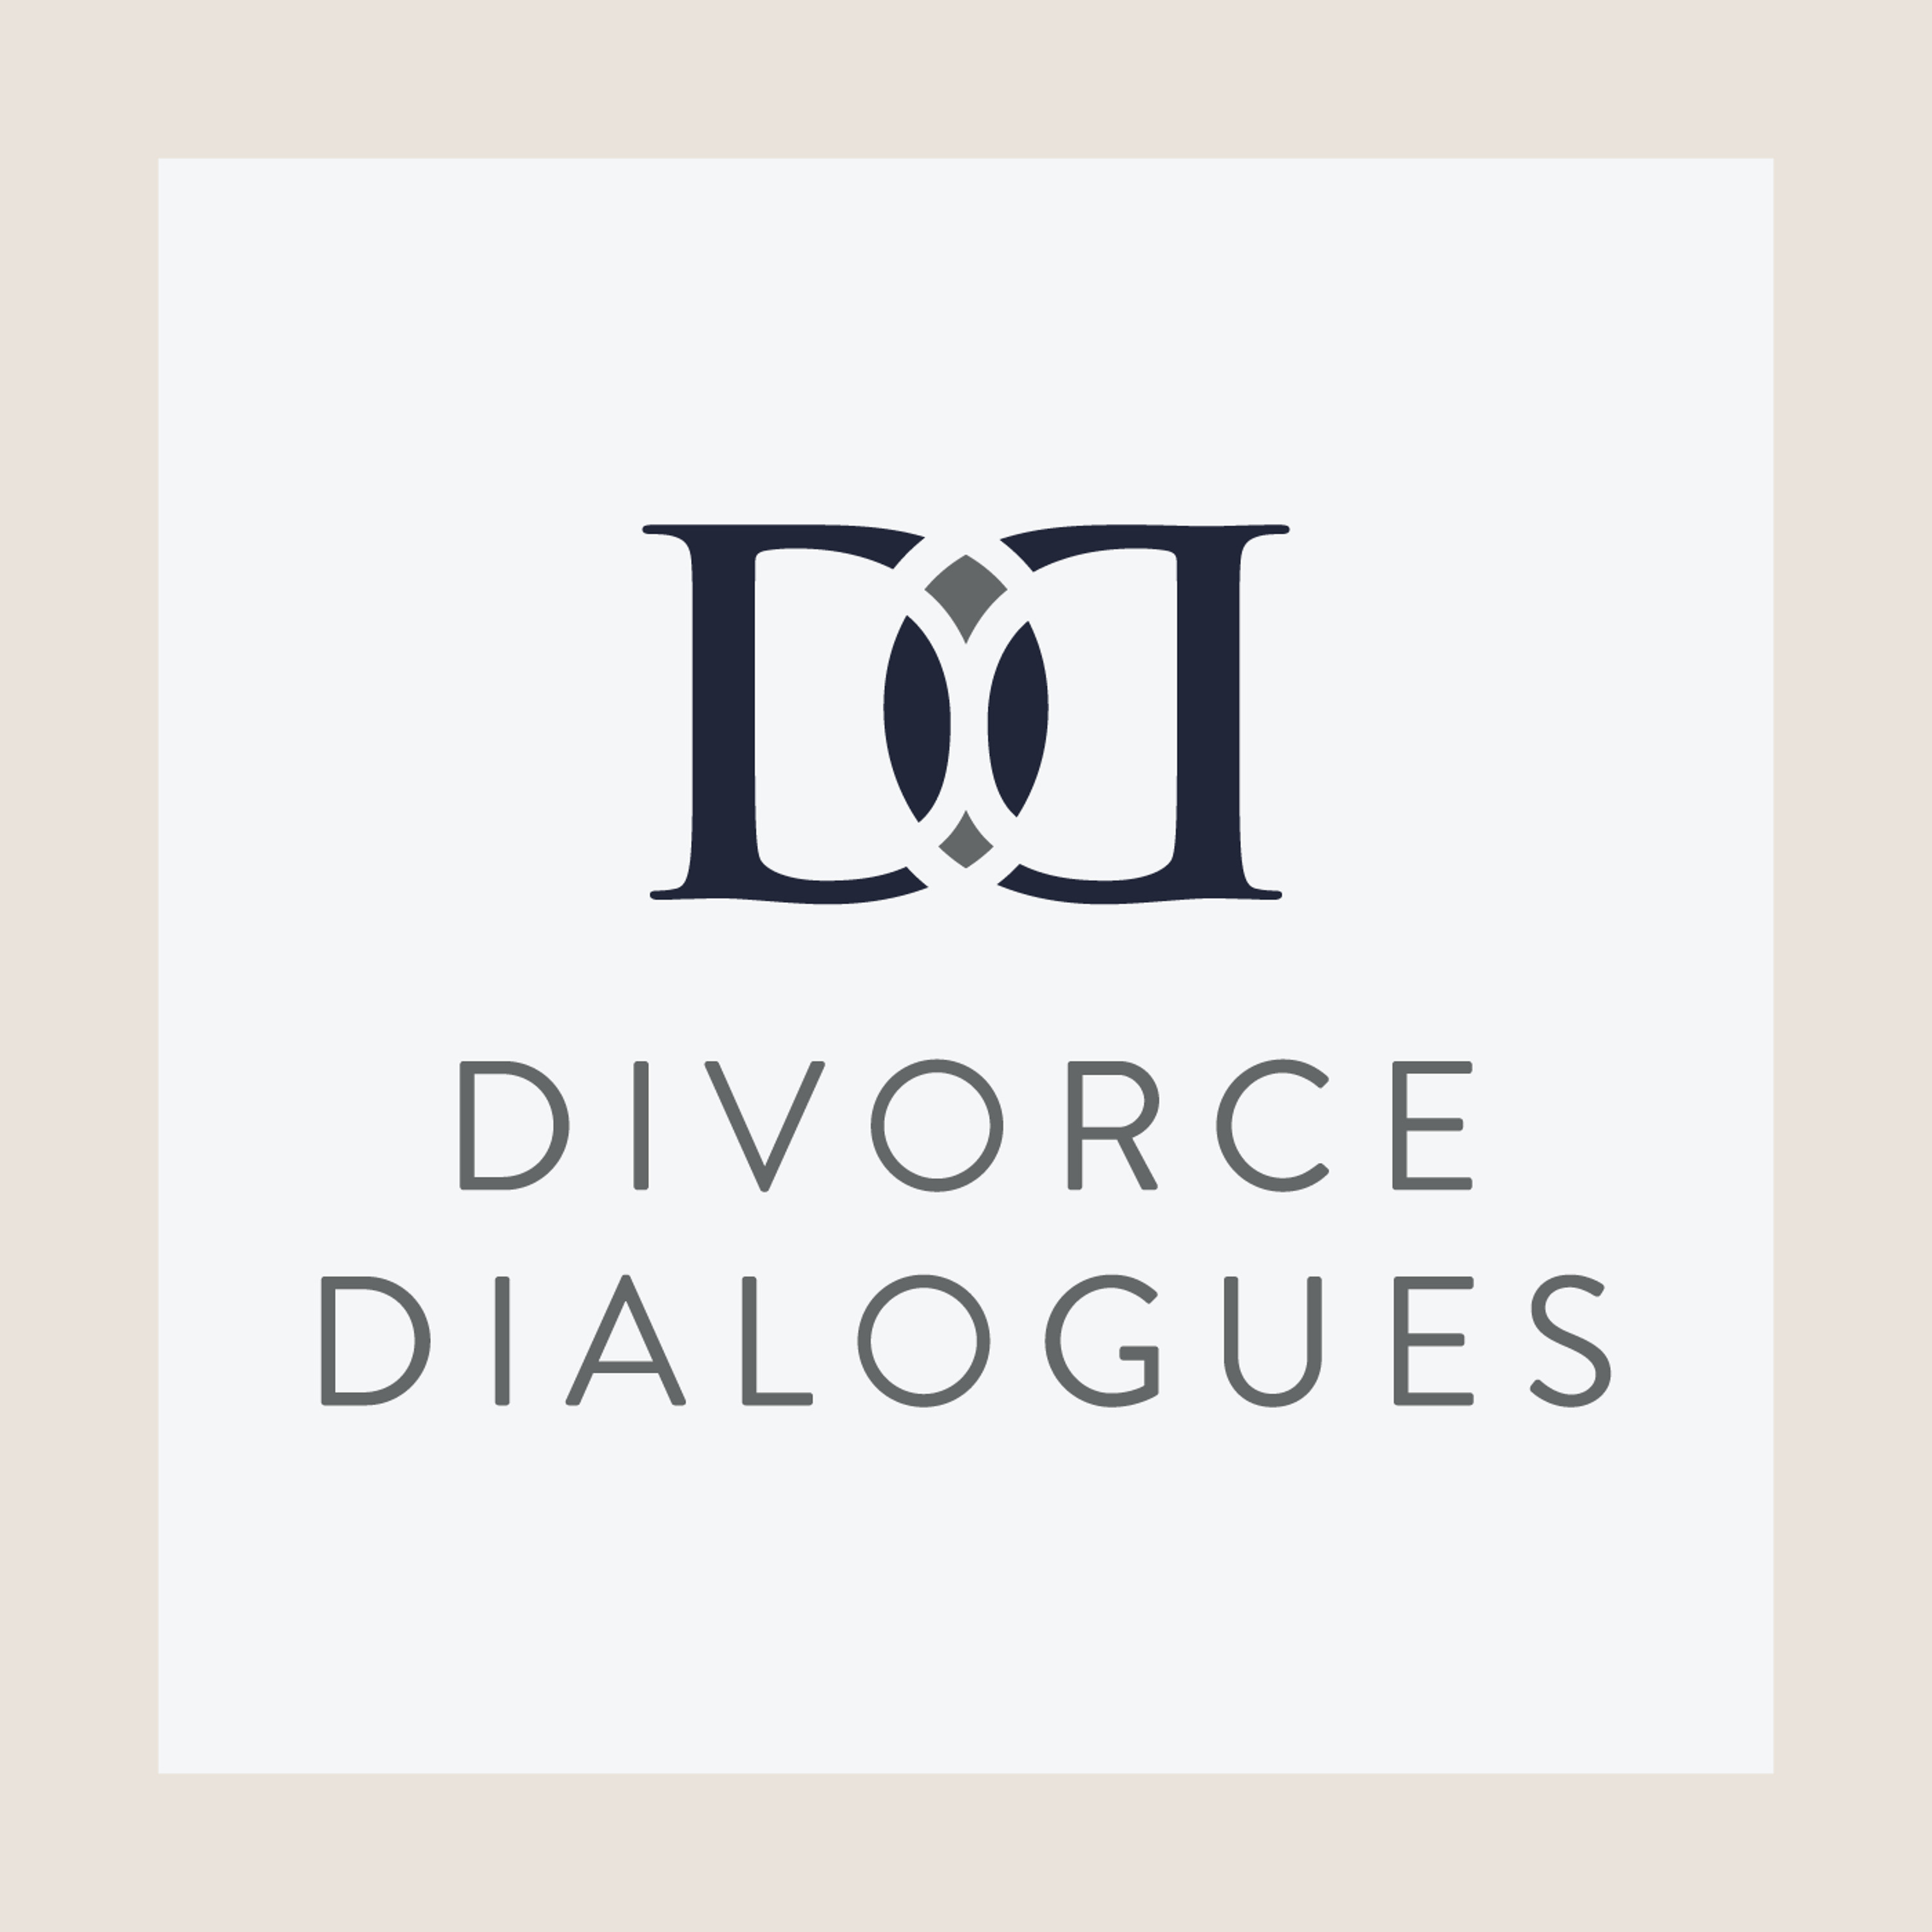 Divorce Dialogues - Crafting a Parenting Plan That Puts Kids First with Dr. Conklin-Danao